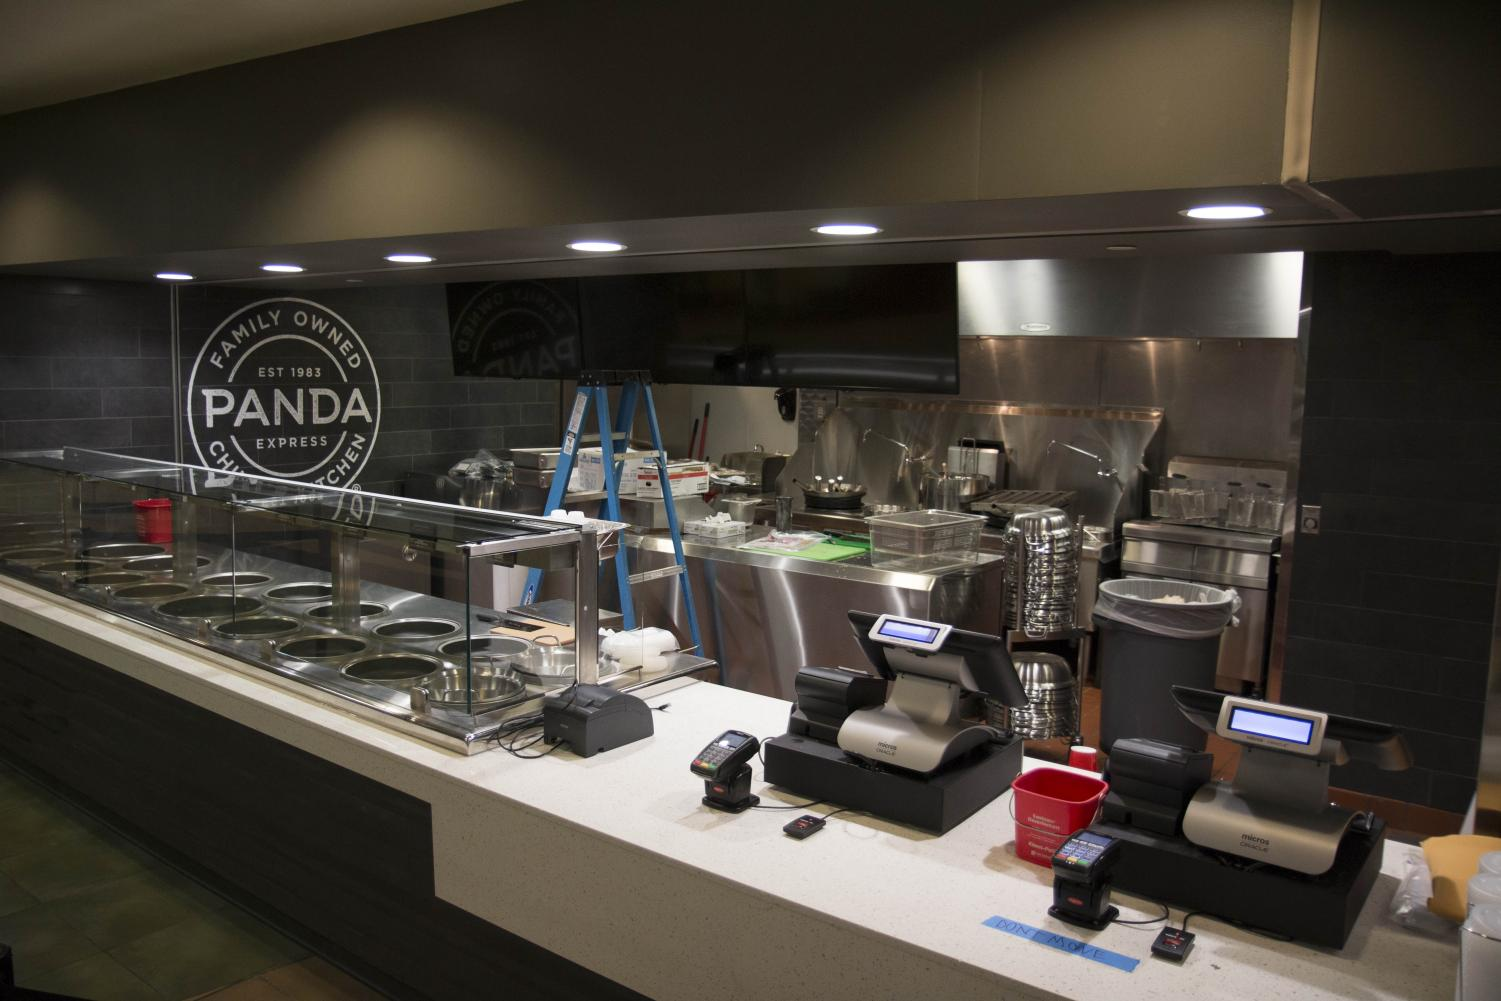 The new Panda Express on campus can be found in the Rhatigan Student Center. (File photo)